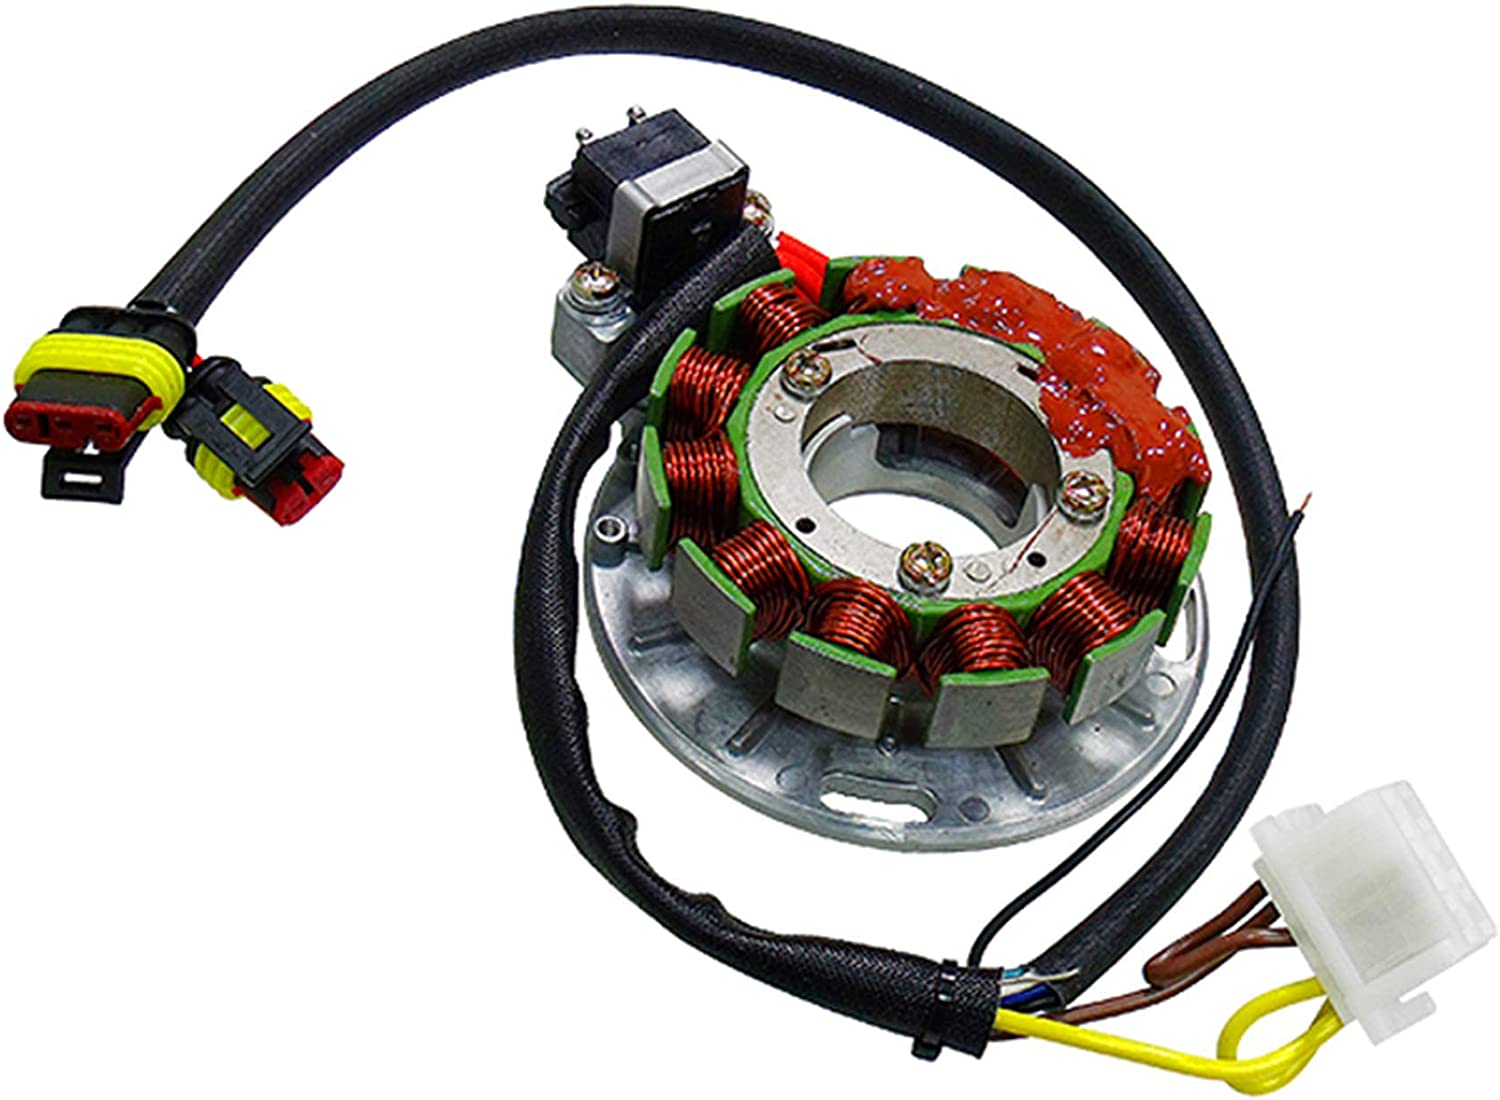 Stator Assembly For 1998 Polaris 700 XC Snowmobile